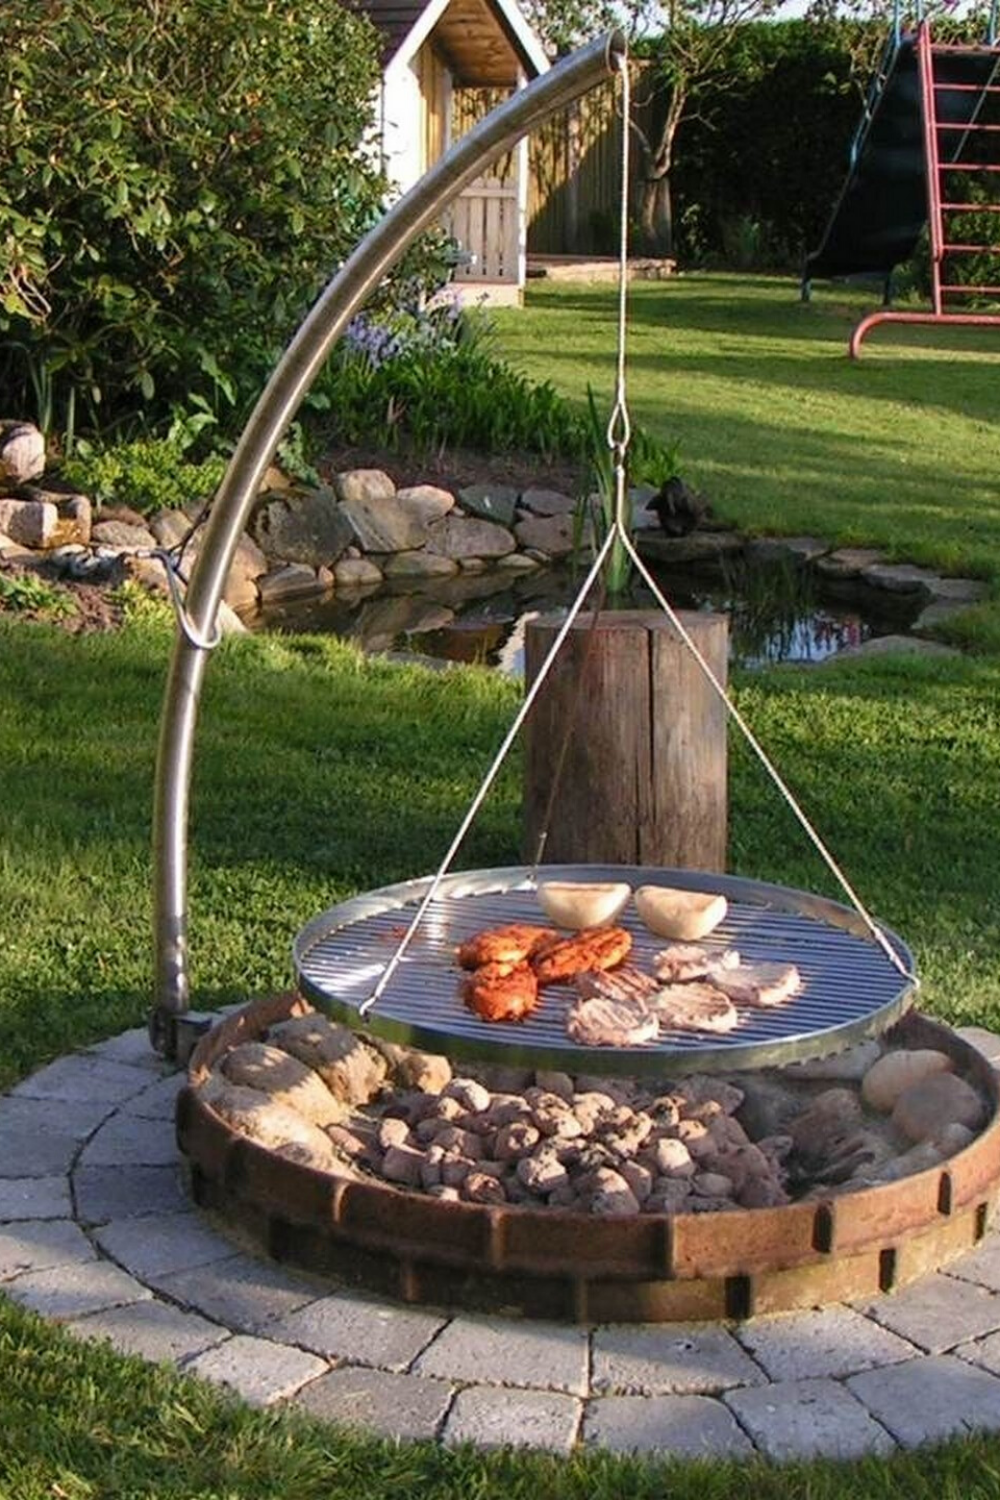 Pin By Suzanne Hodges On Fire Pits In 2020 Garden Fire Pit Backyard Fire Fire Pit Patio